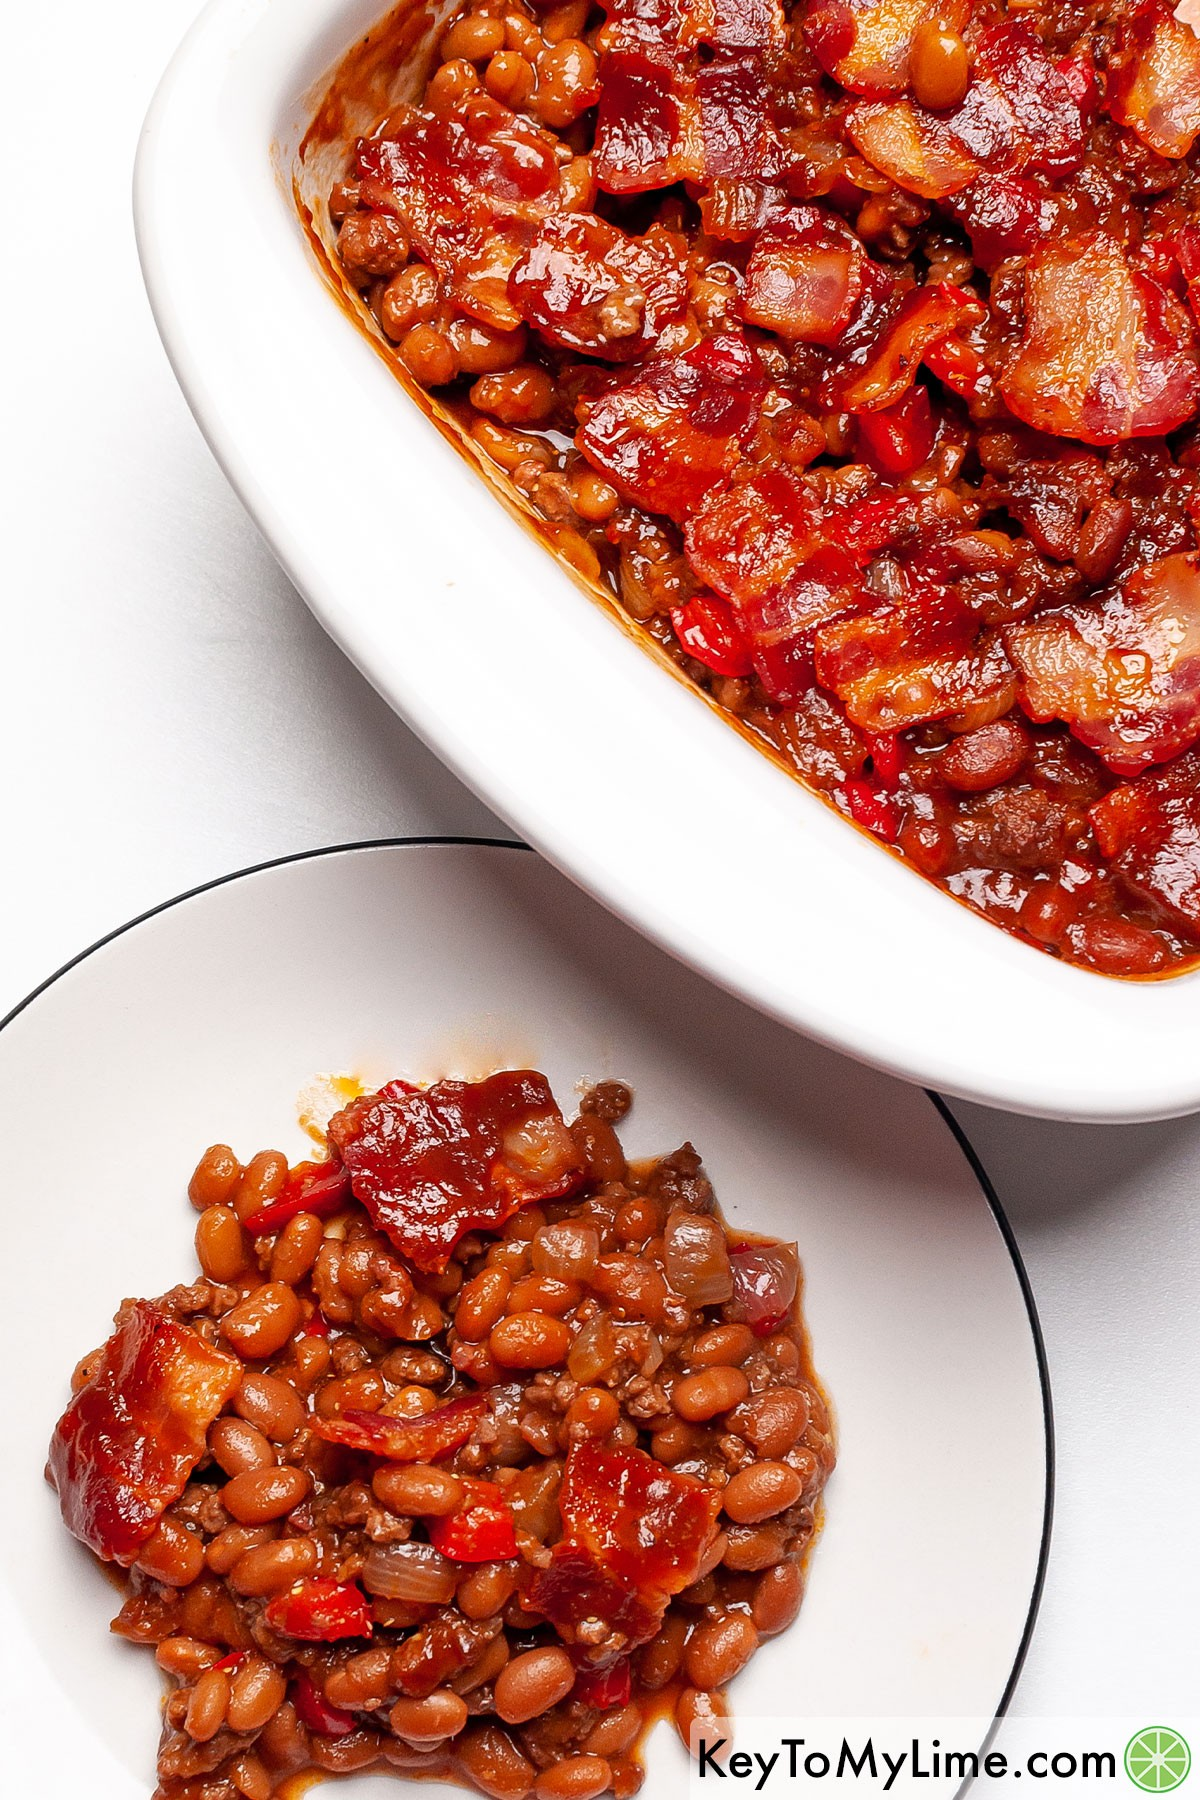 A serving of baked beans on a plate next to the casserole dish.